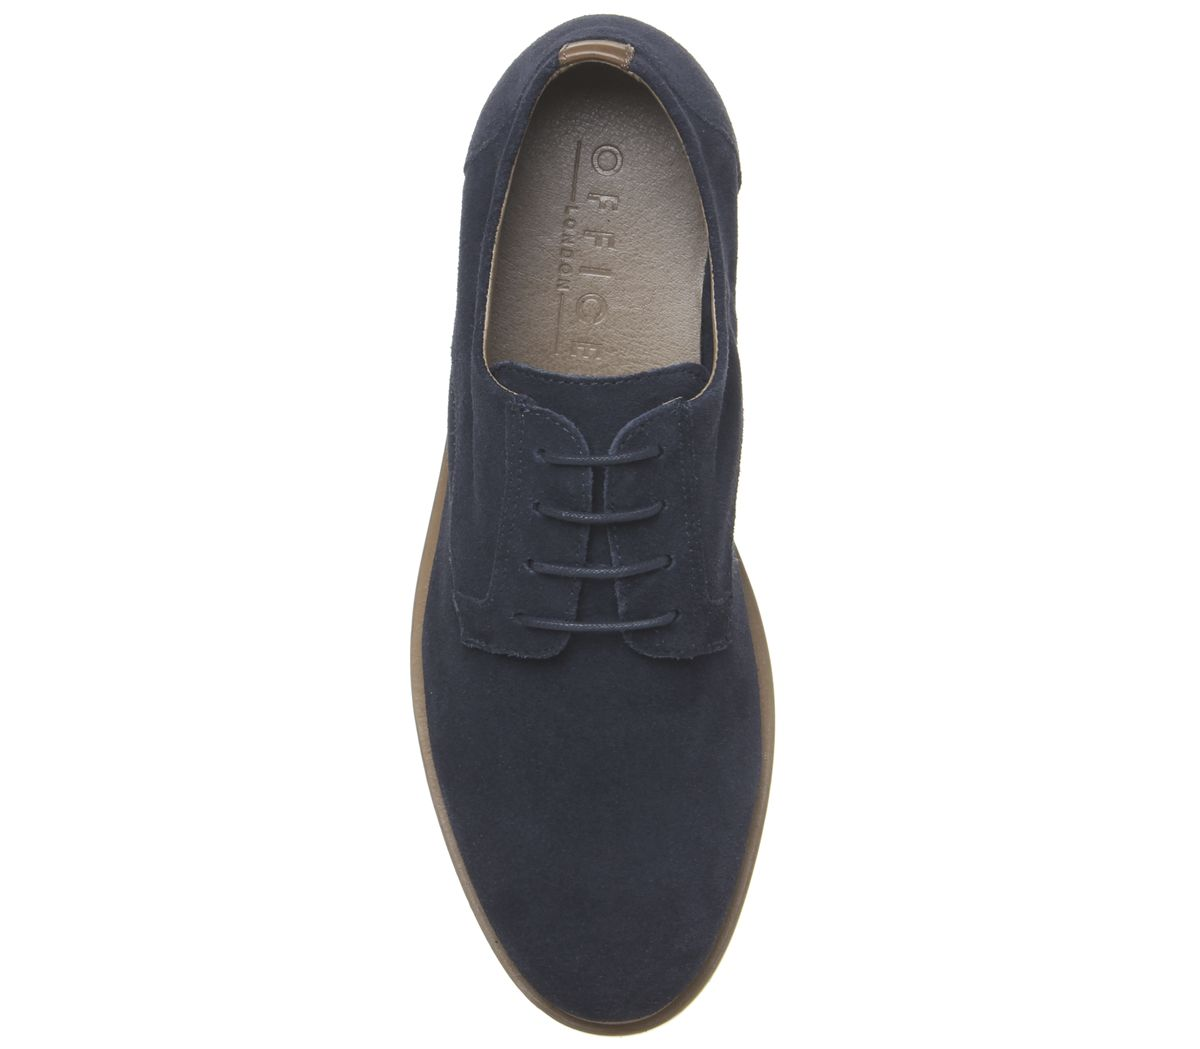 Mens-Office-Item-Derby-Shoes-Navy-Suede-Casual-Shoes thumbnail 10